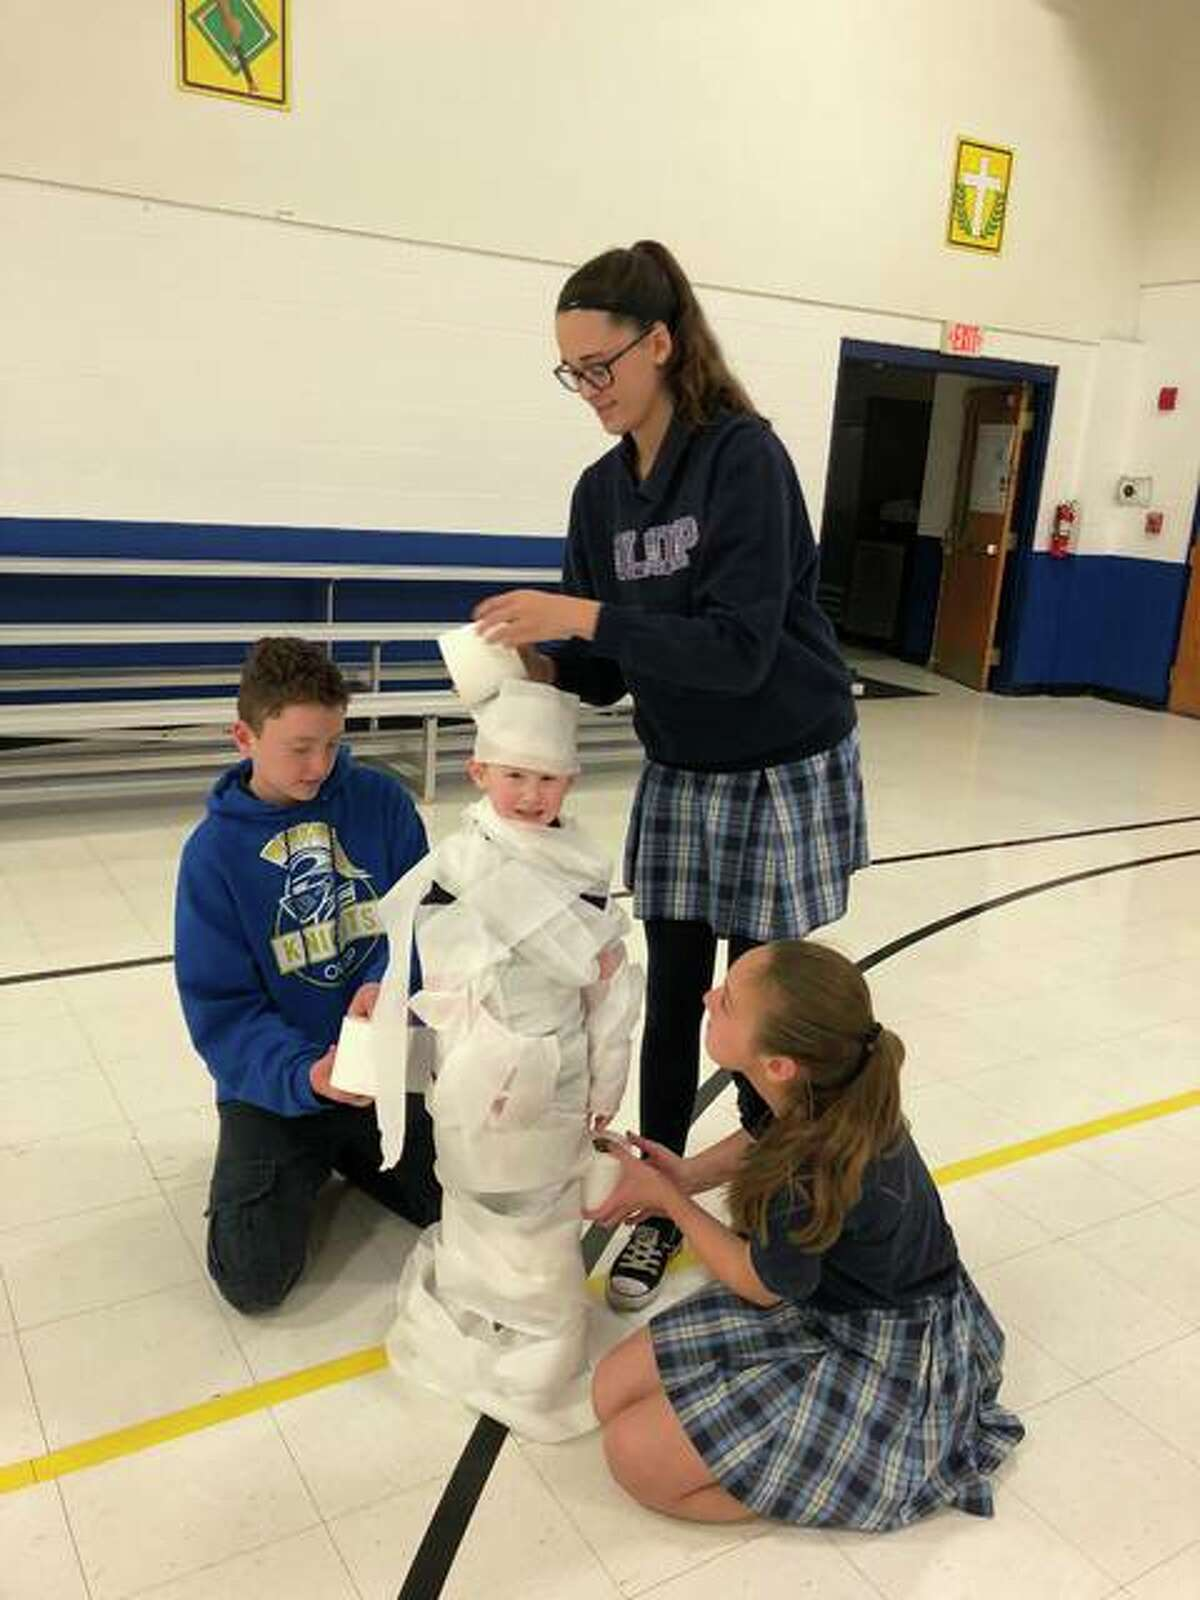 Students, using toilet paper, wrap-up a kindergartner during a recent Christmas party, to make him look like a snowman. The children, students at Our Lady Queen of Peace School, are members of the Buddy Program, which pairs an eighth-grader to help a kindergartner for the year.